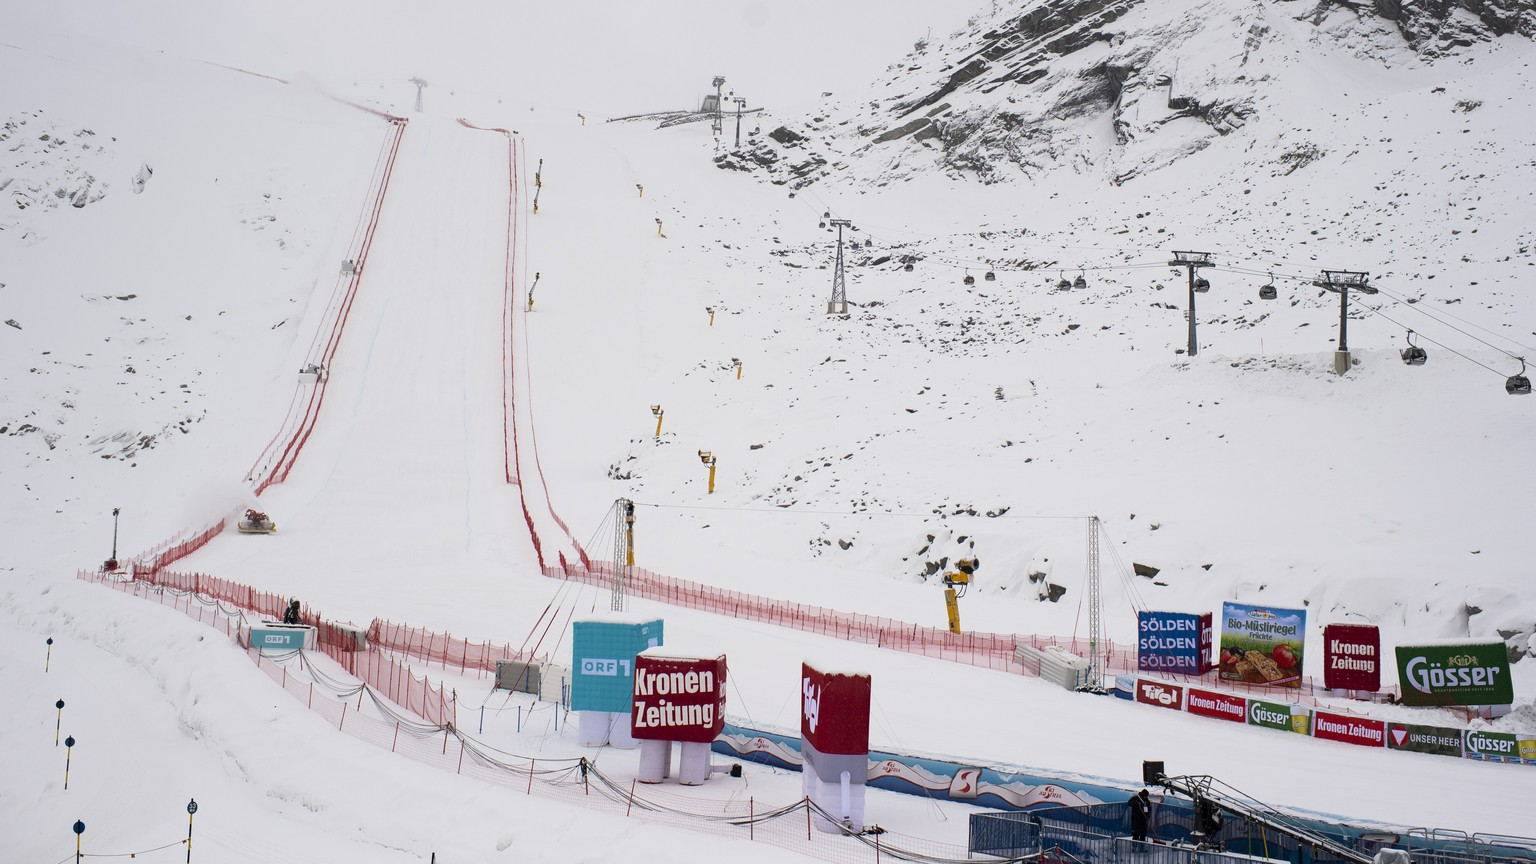 epa08749398 General view of the finishing area at the FIS Alpine Ski World Cup season in Soelden, Austria, 16 October 2020. The FIS Alpine Skiing World Cup season 2020/2021 will be traditionally opened with Giant Slalom races on 17 and 18 October 2019 in Soelden. Due to measures to stem the coronavirus (COVID-19) disease, the races will take place without spectators.  EPA/GIAN EHRENZELLER